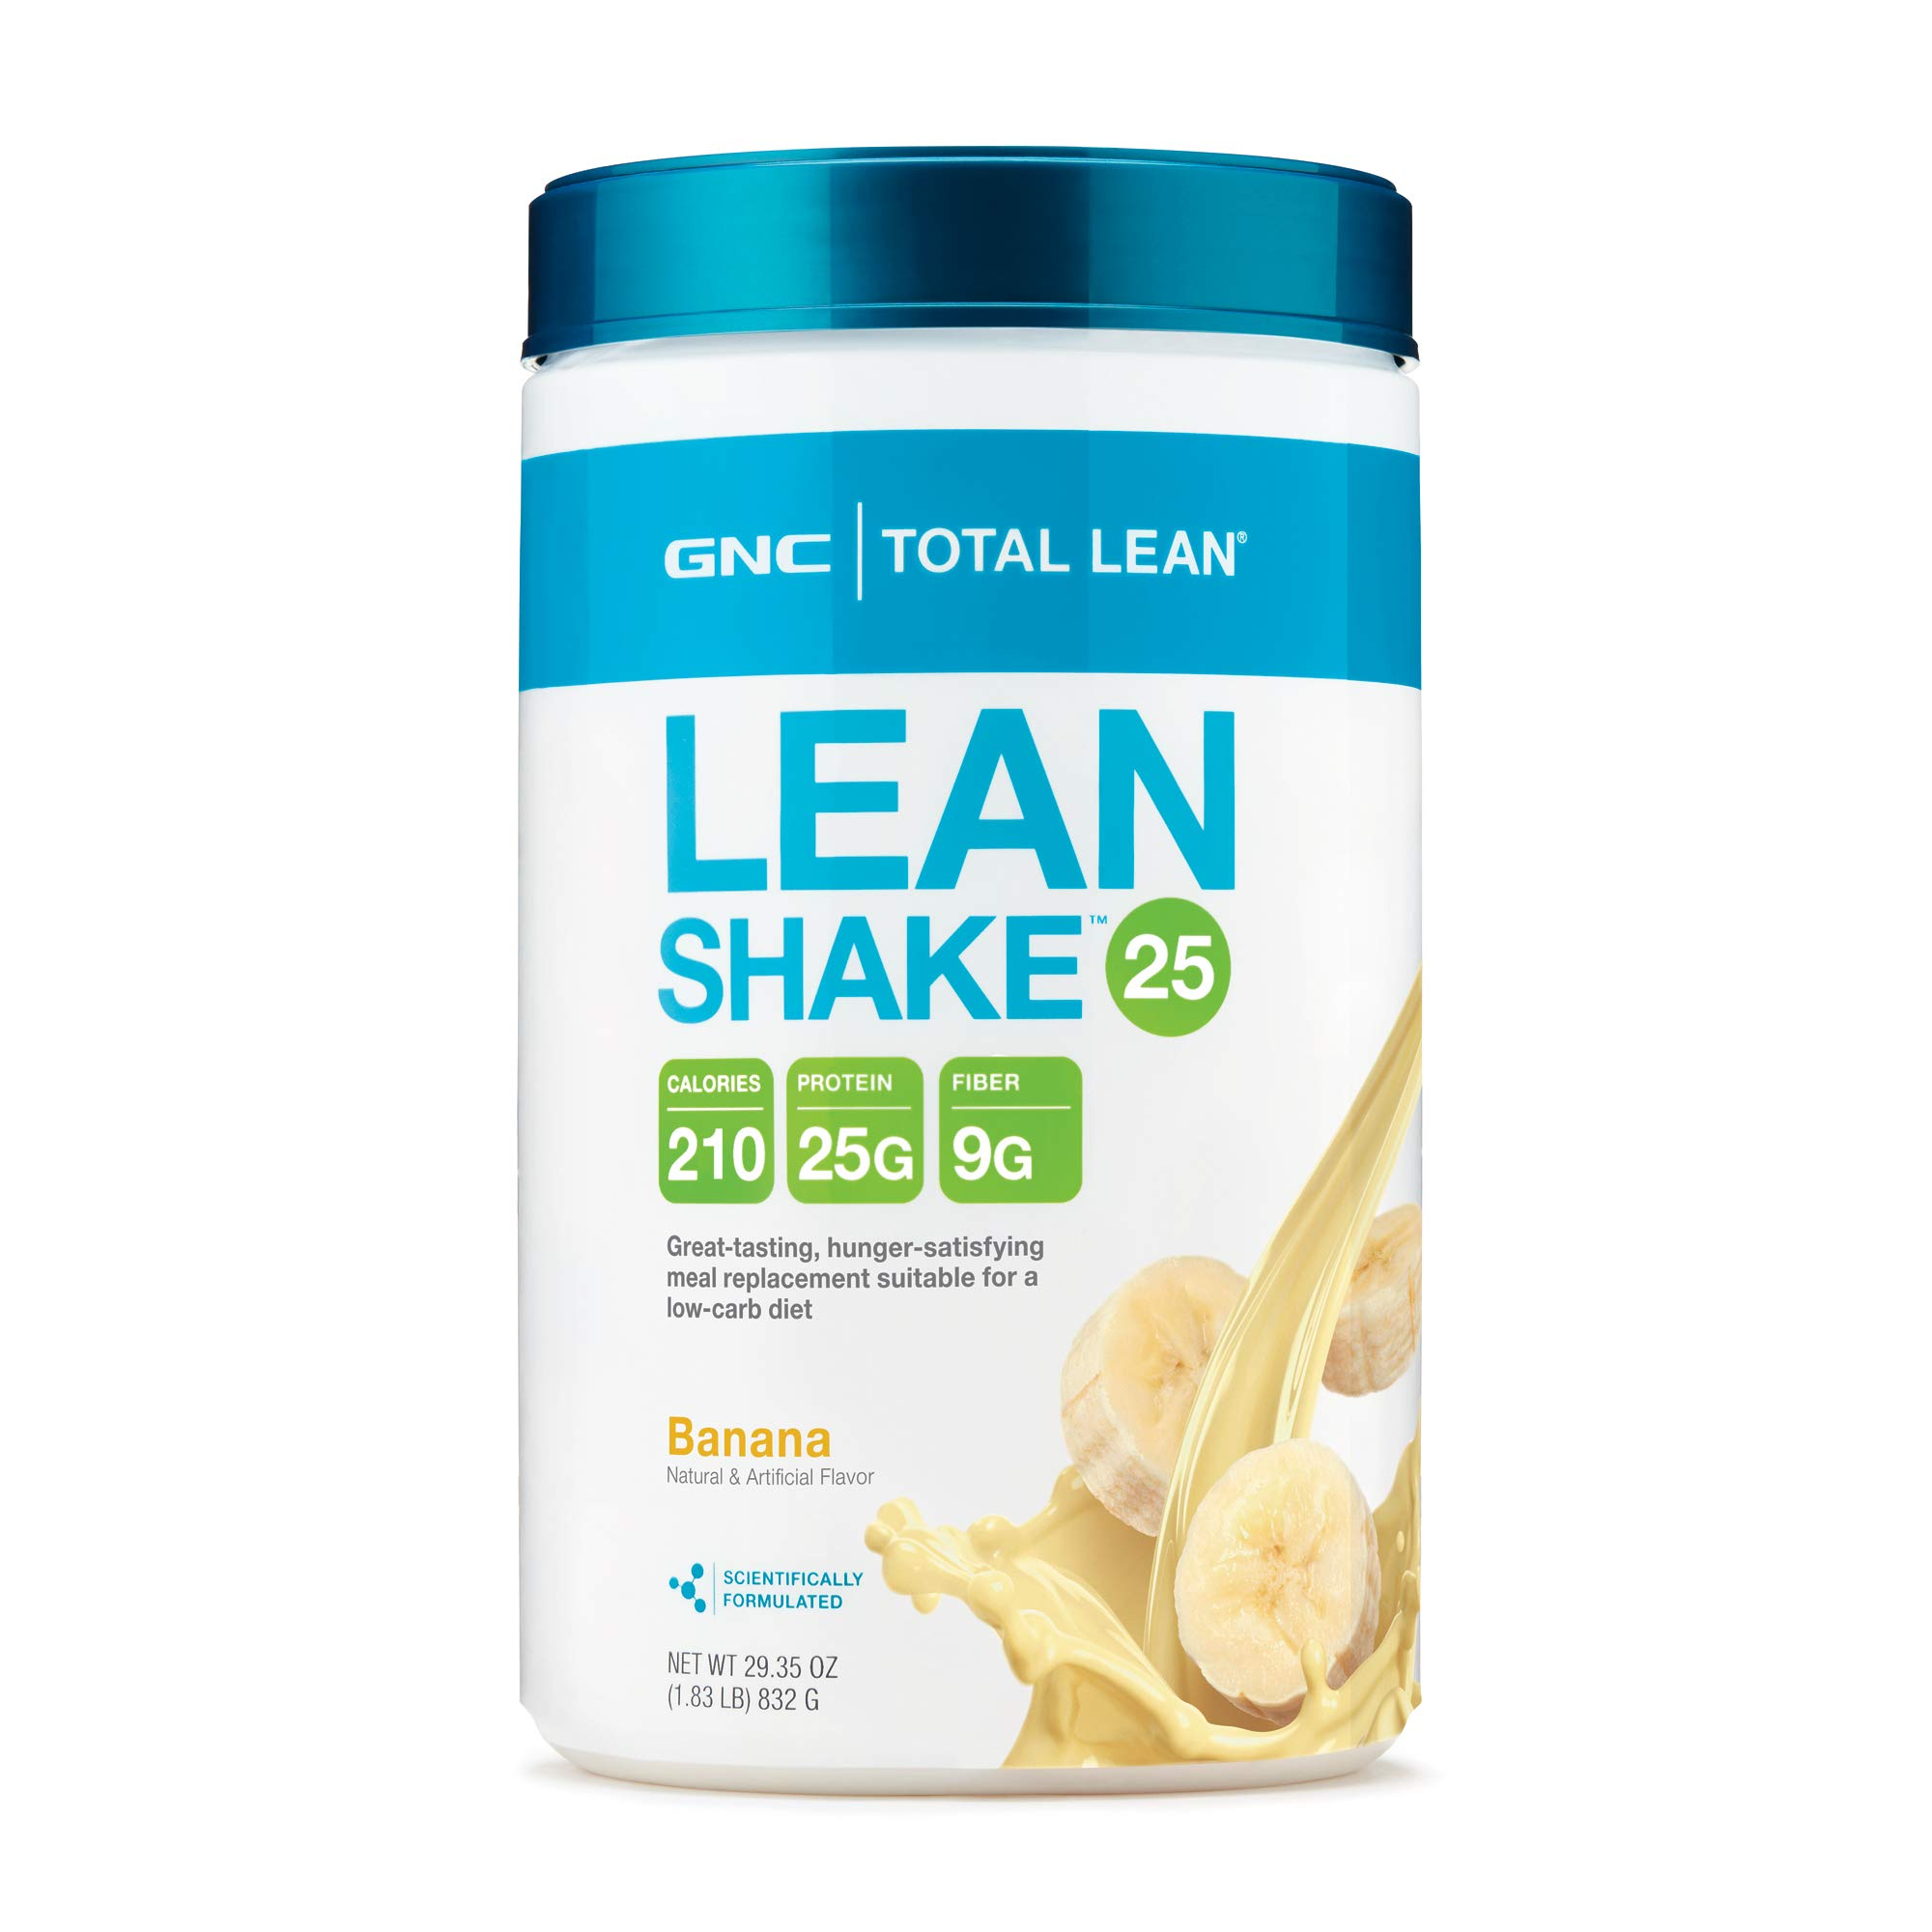 GNC Total Lean 25 Meal Replacement Shake for Weight Loss and Low-Carb Diets, Banana, 16 Servings, Protein Powder for Weight Management Support